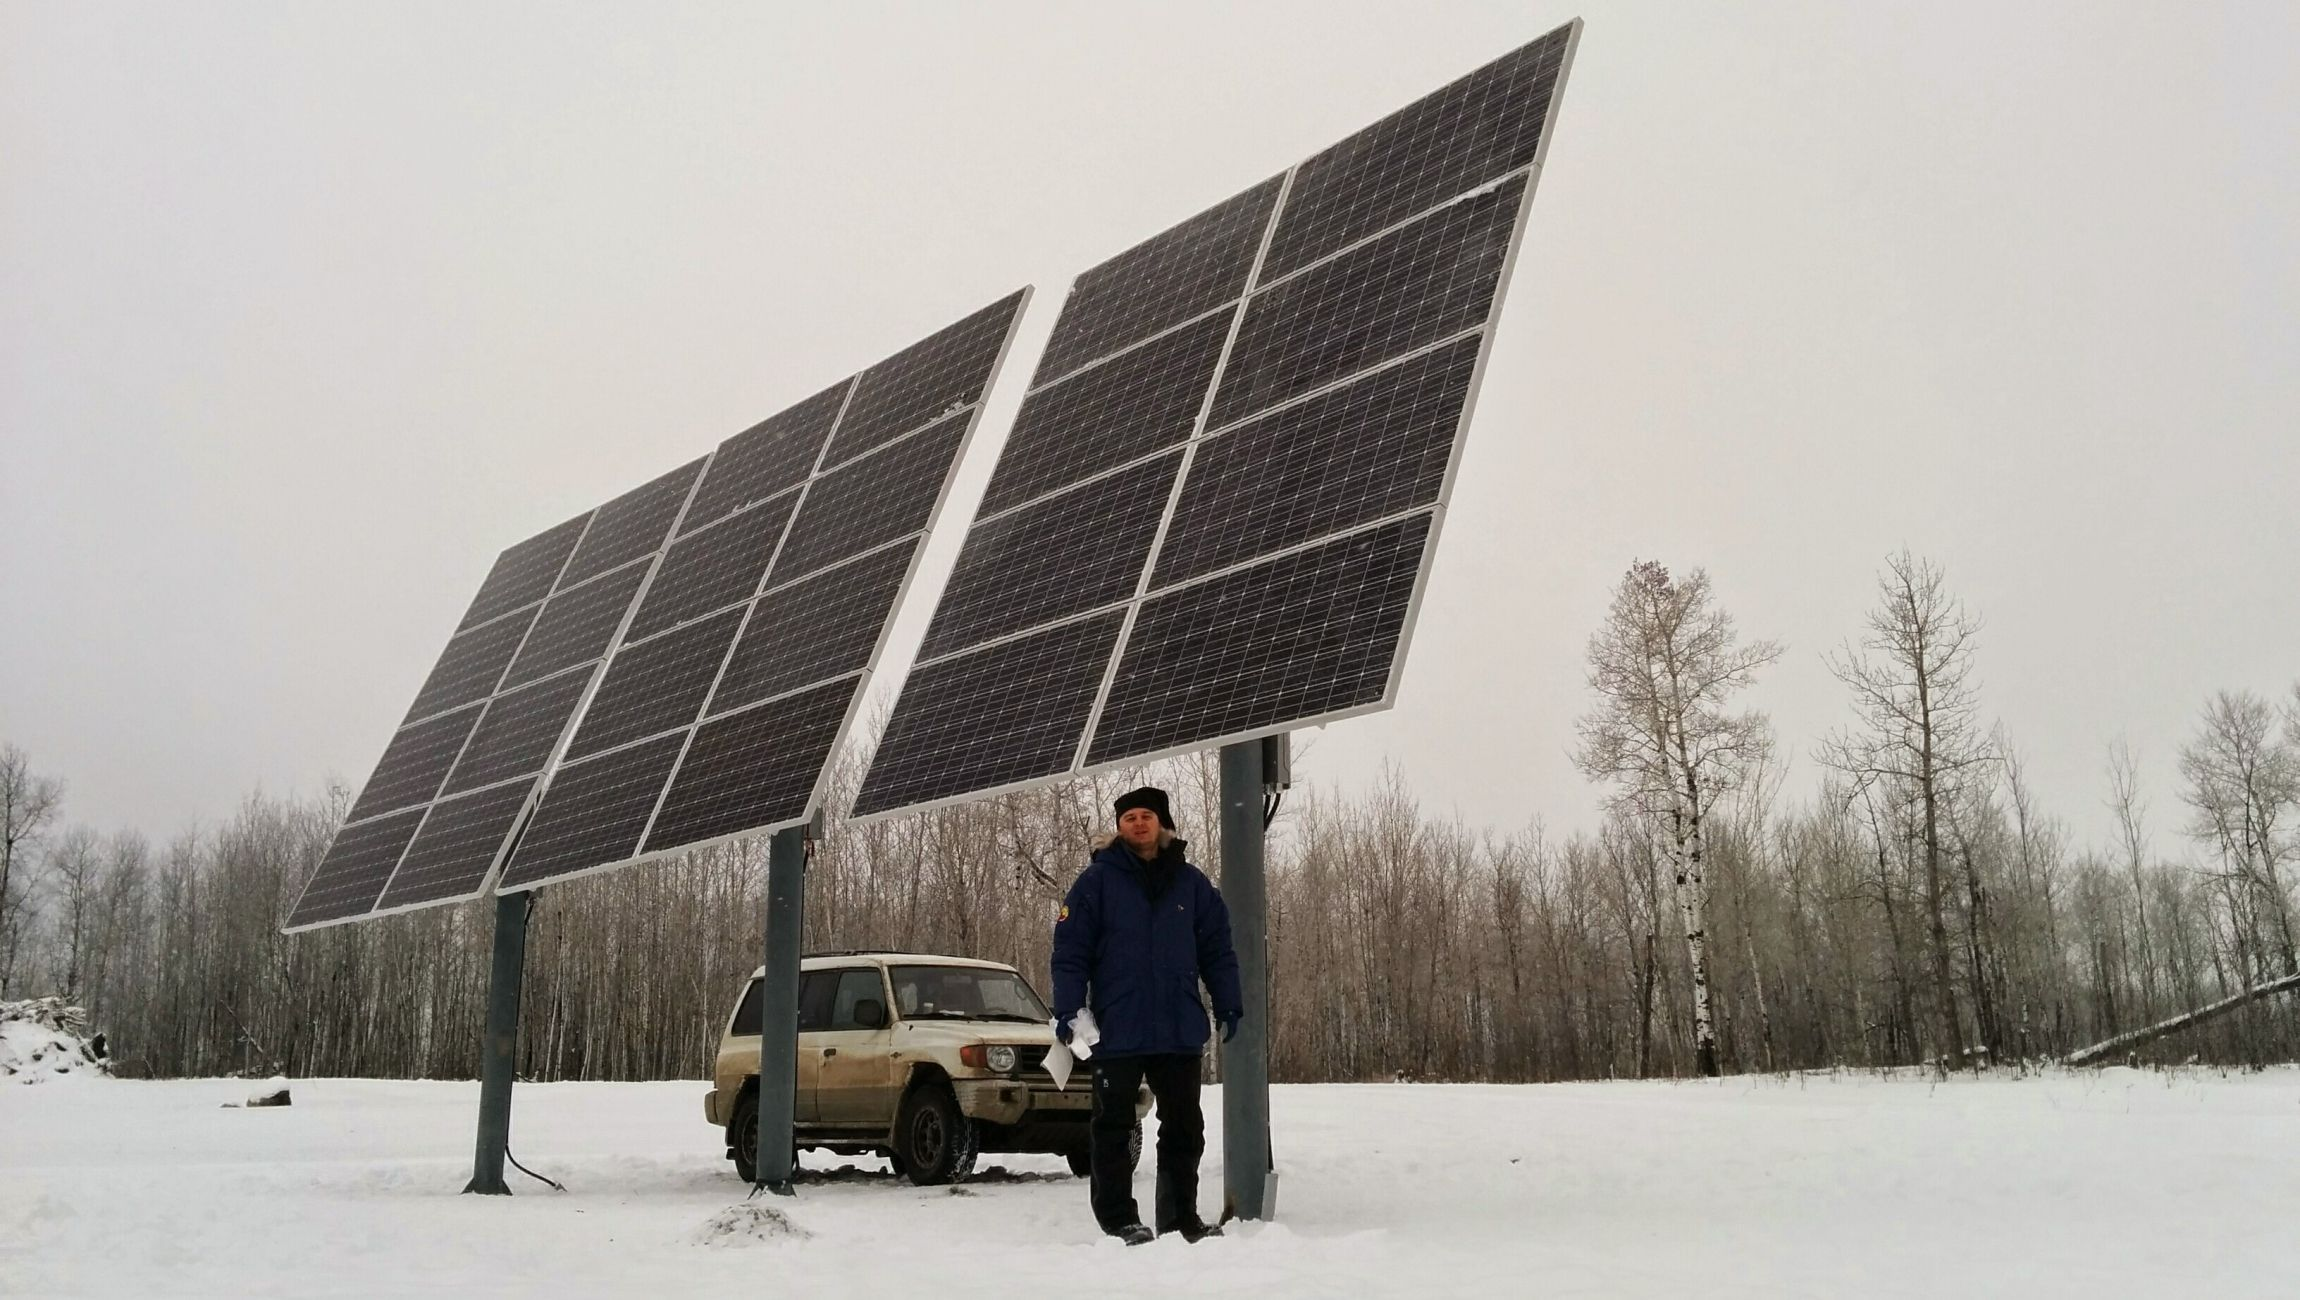 High pitch solar panels installed for off-grid